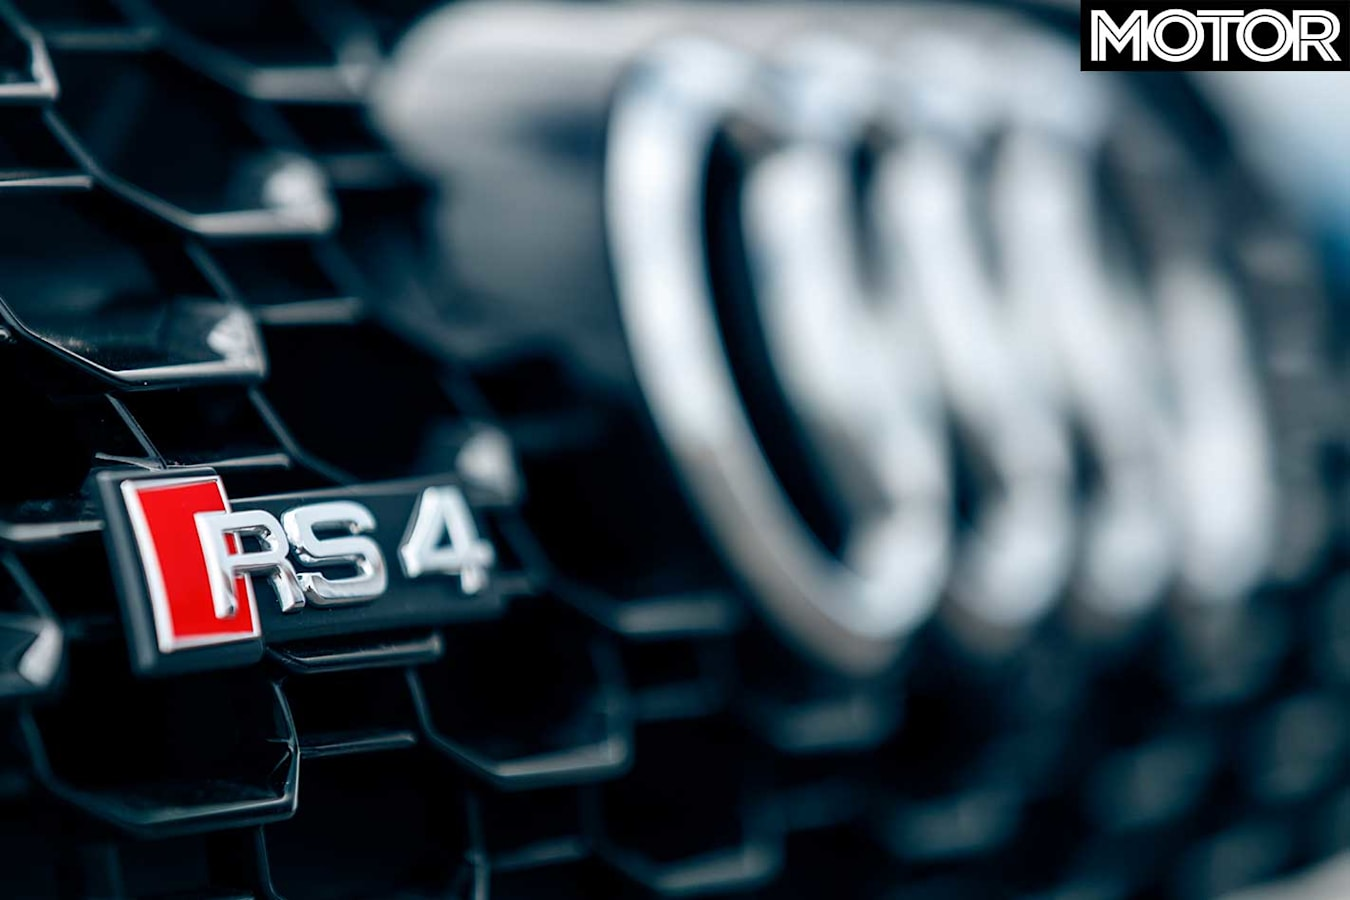 Performance Car Of The Year 2019 6th Place Audi RS 4 Avant Front Grille Badge Jpg